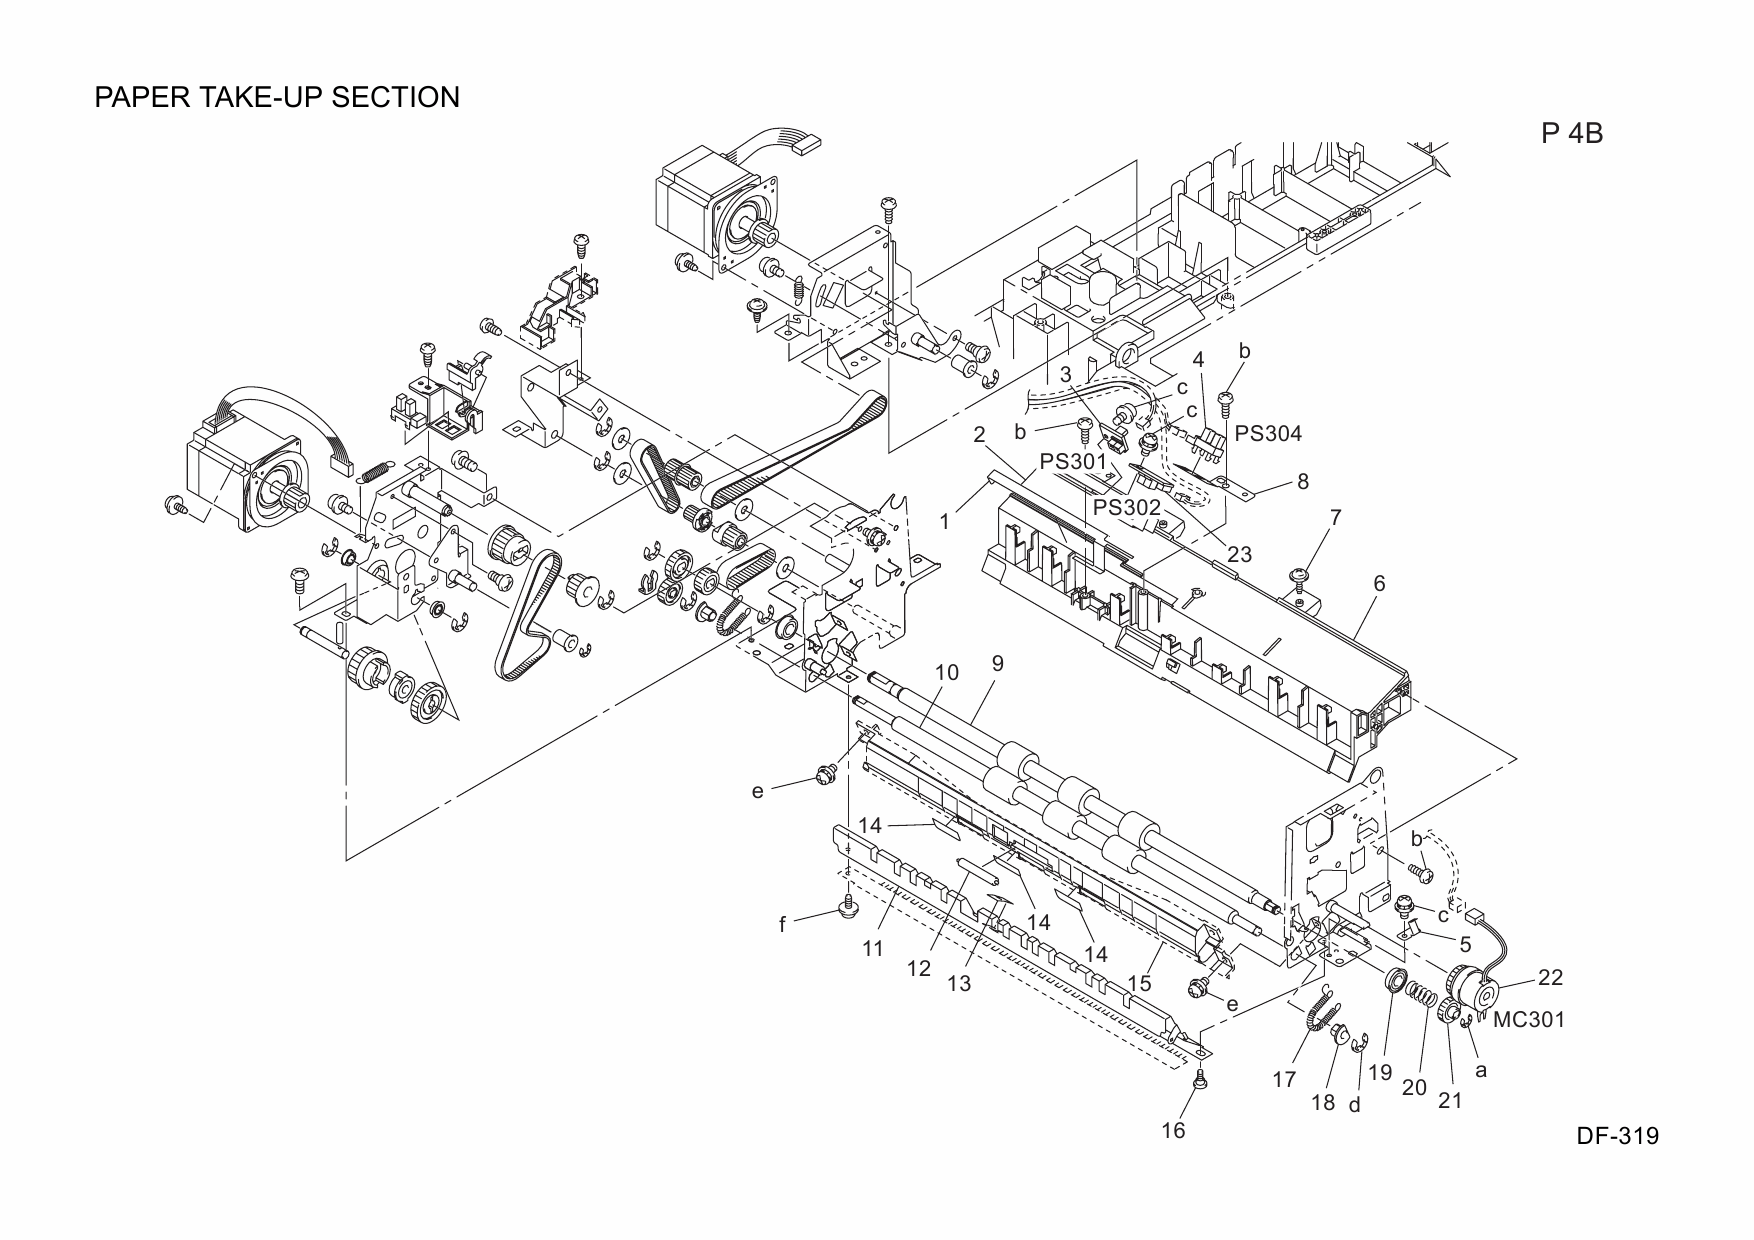 Konica-Minolta Options DF-319 20AJ Parts Manual-2